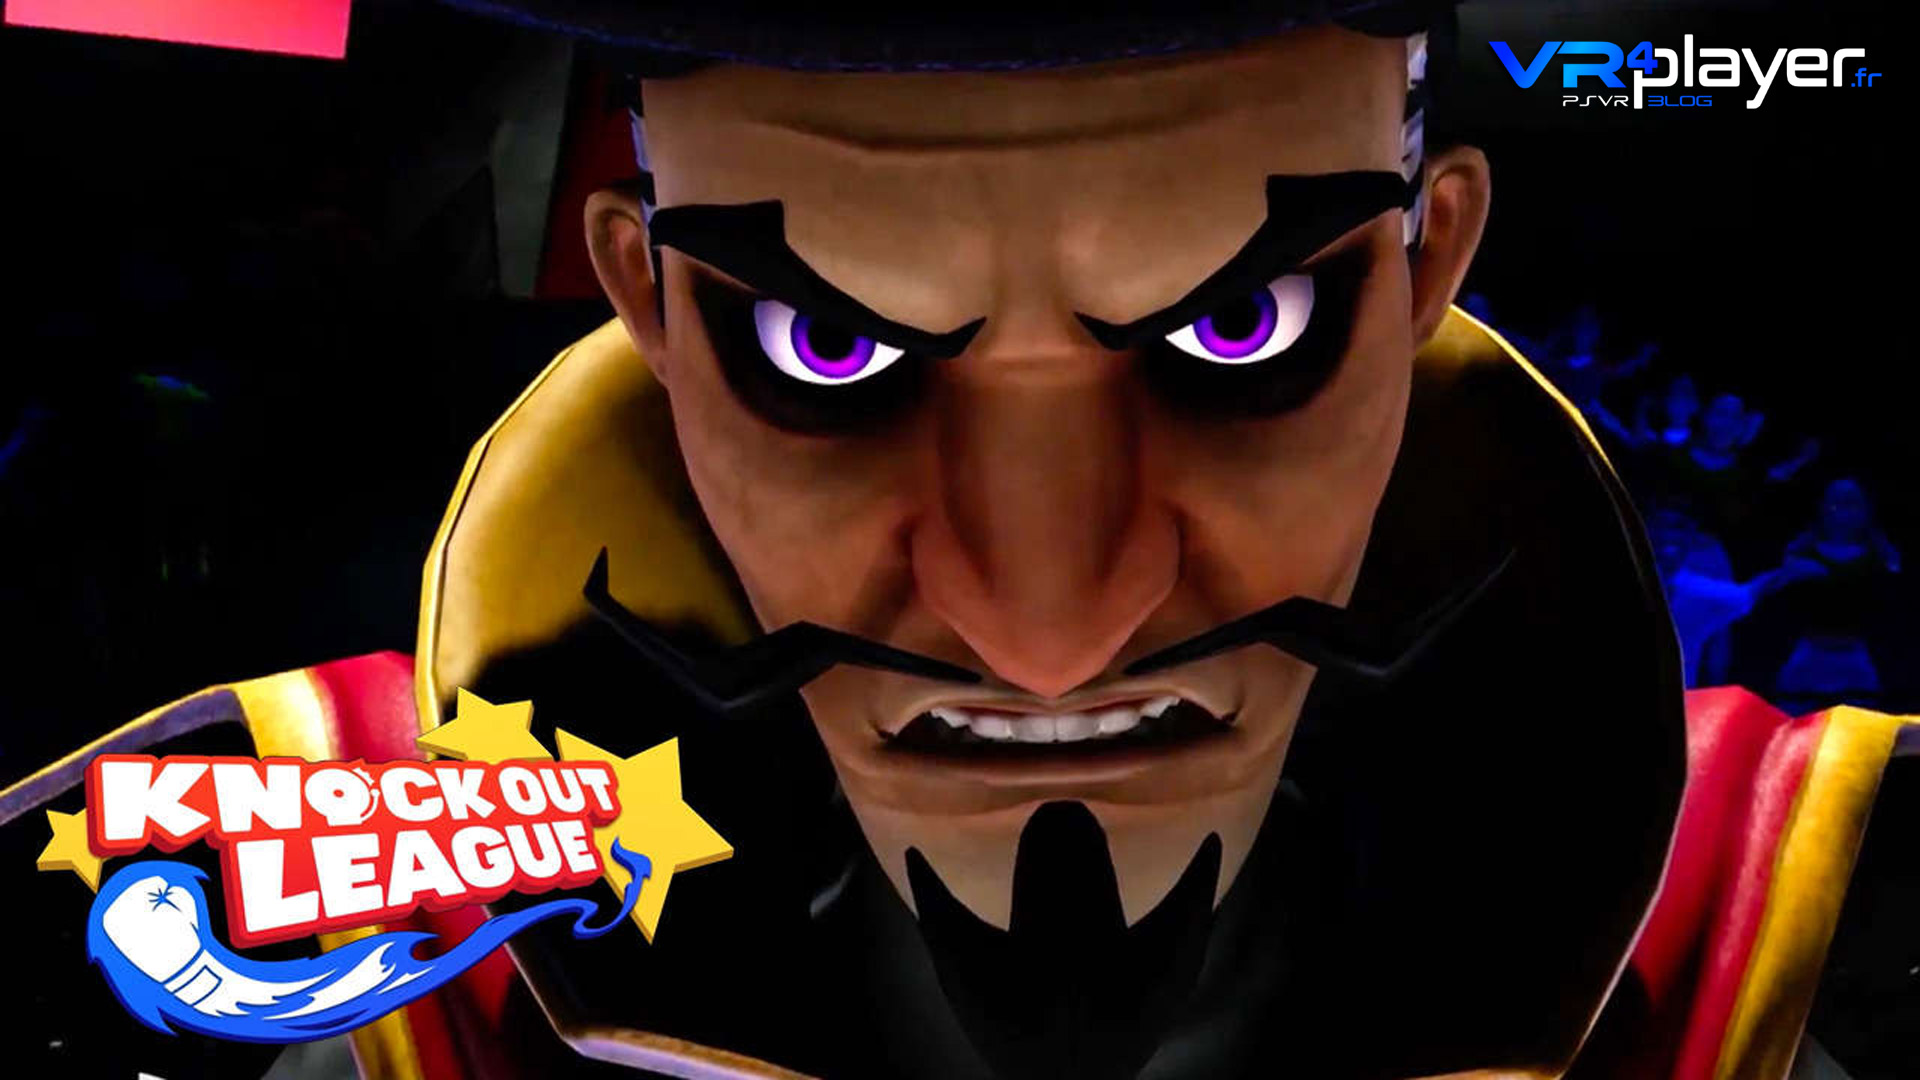 Knock Out League PlayStation VR vrplayer.fr